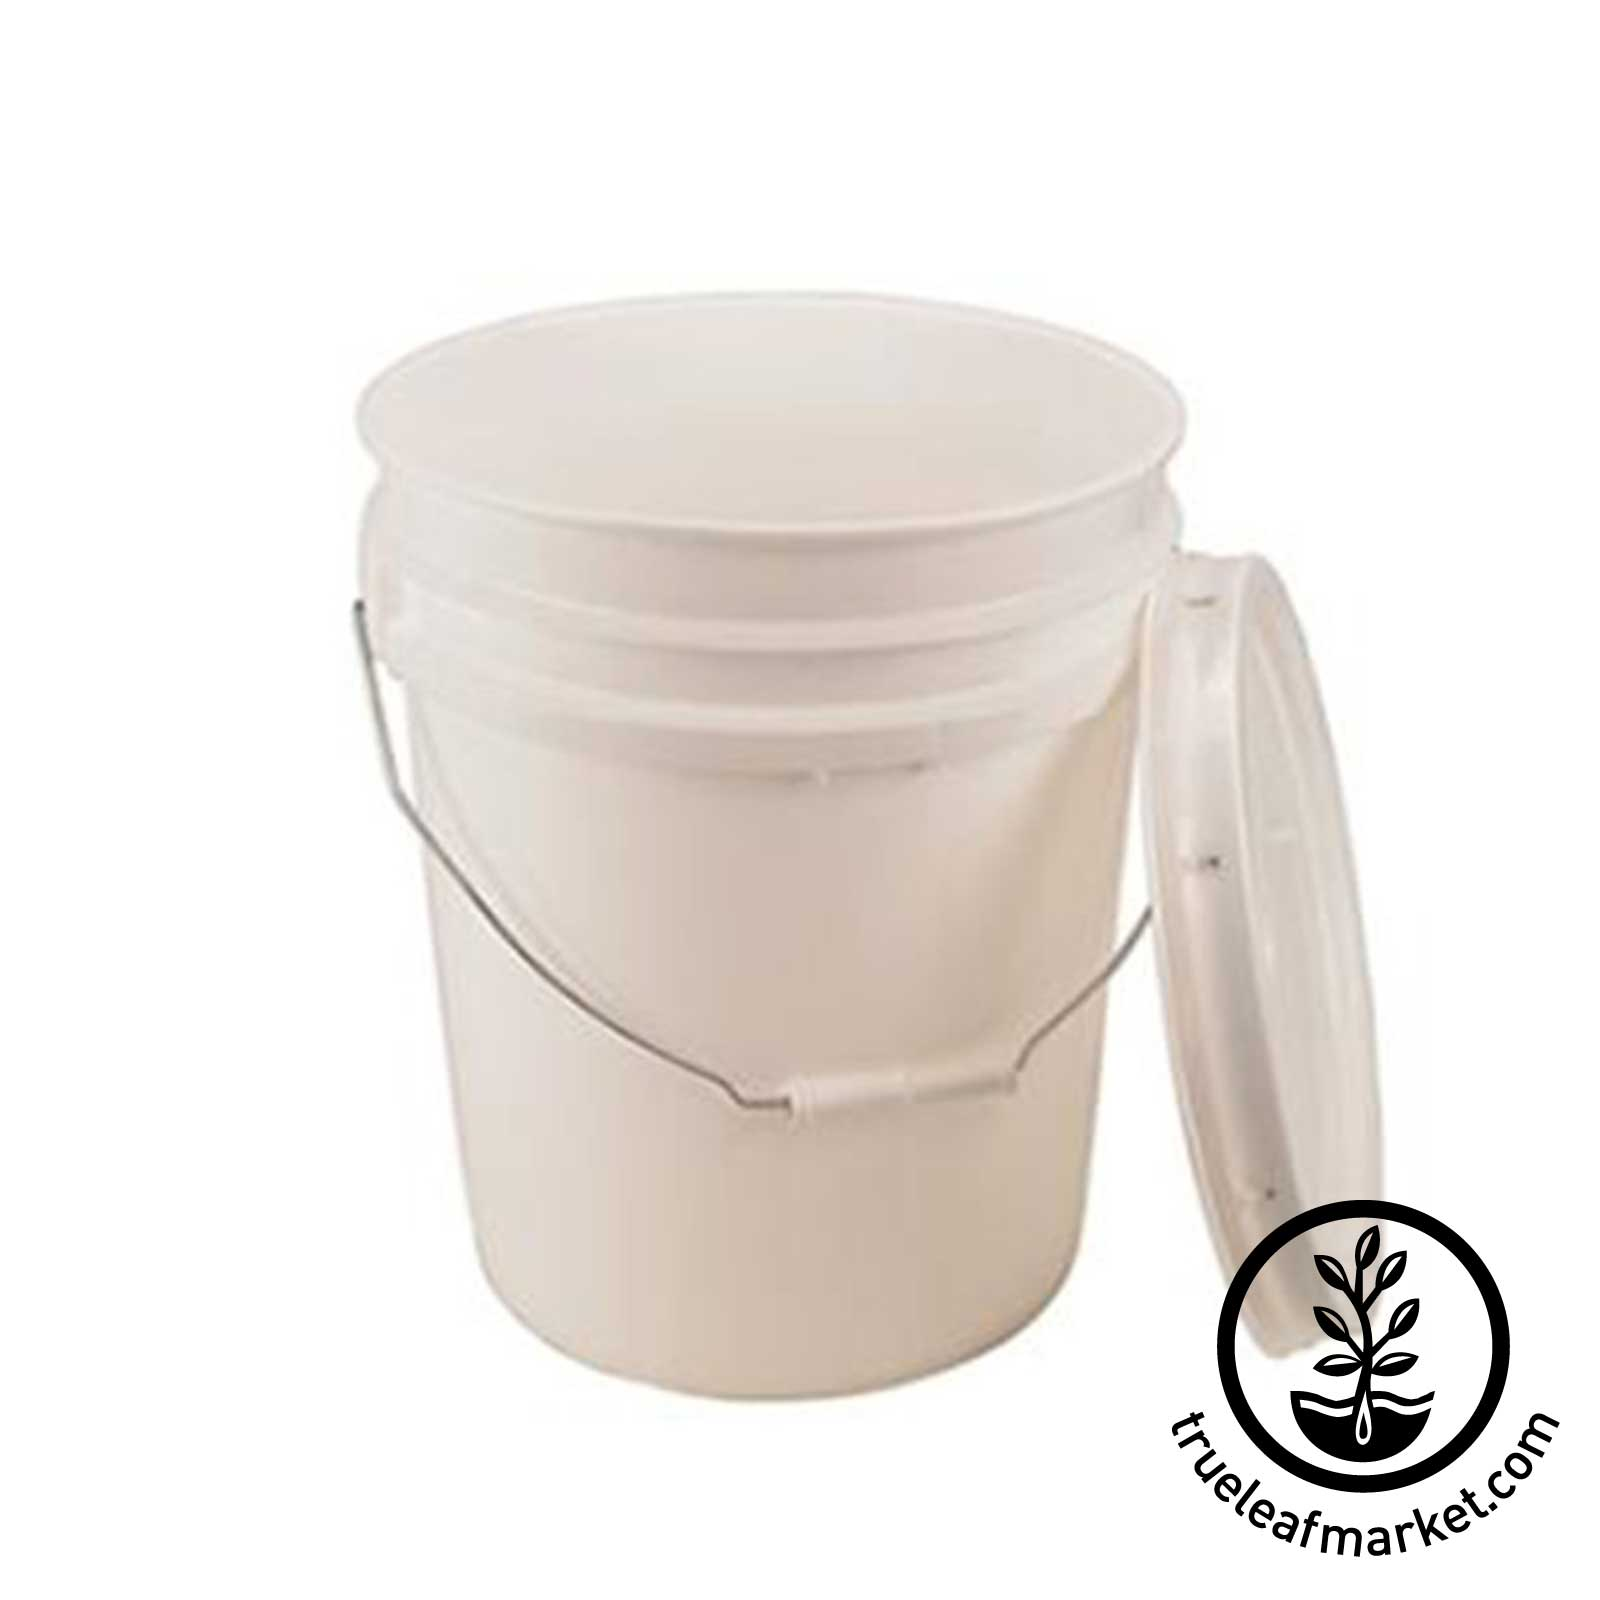 5 Gallon Plastic Bucket - Food Grade Pail